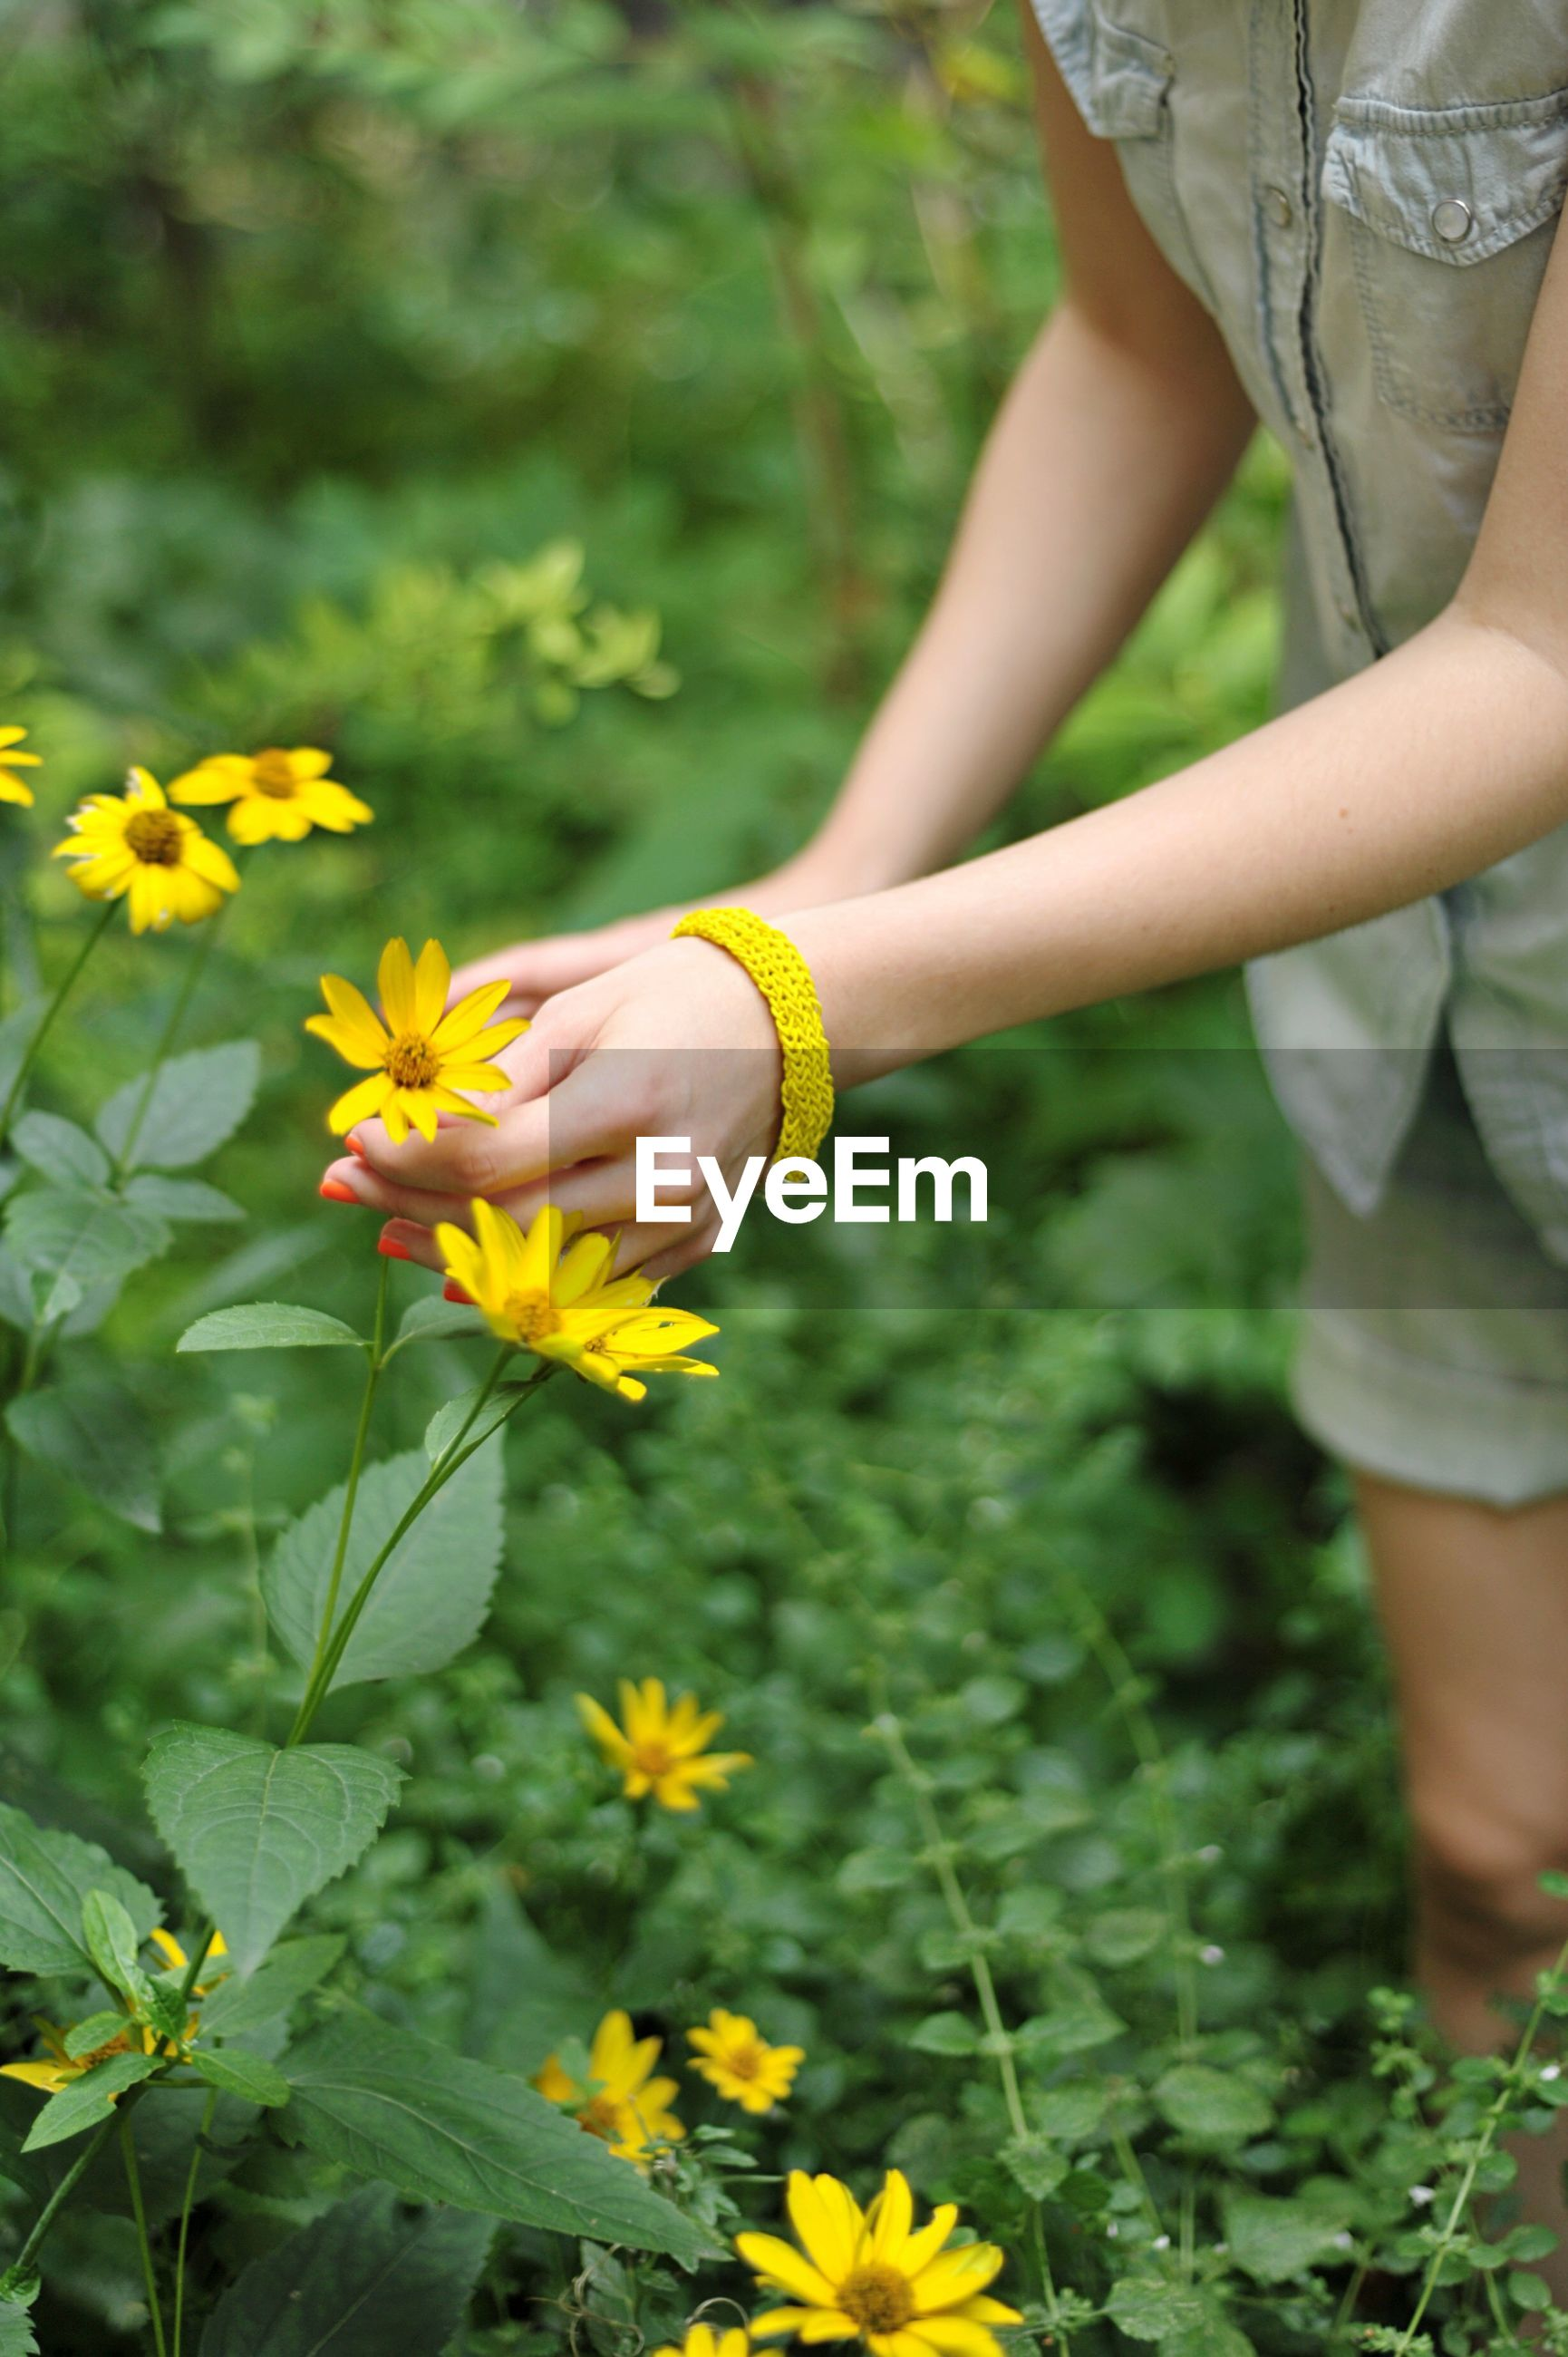 Cropped image of woman plucking yellow flowers